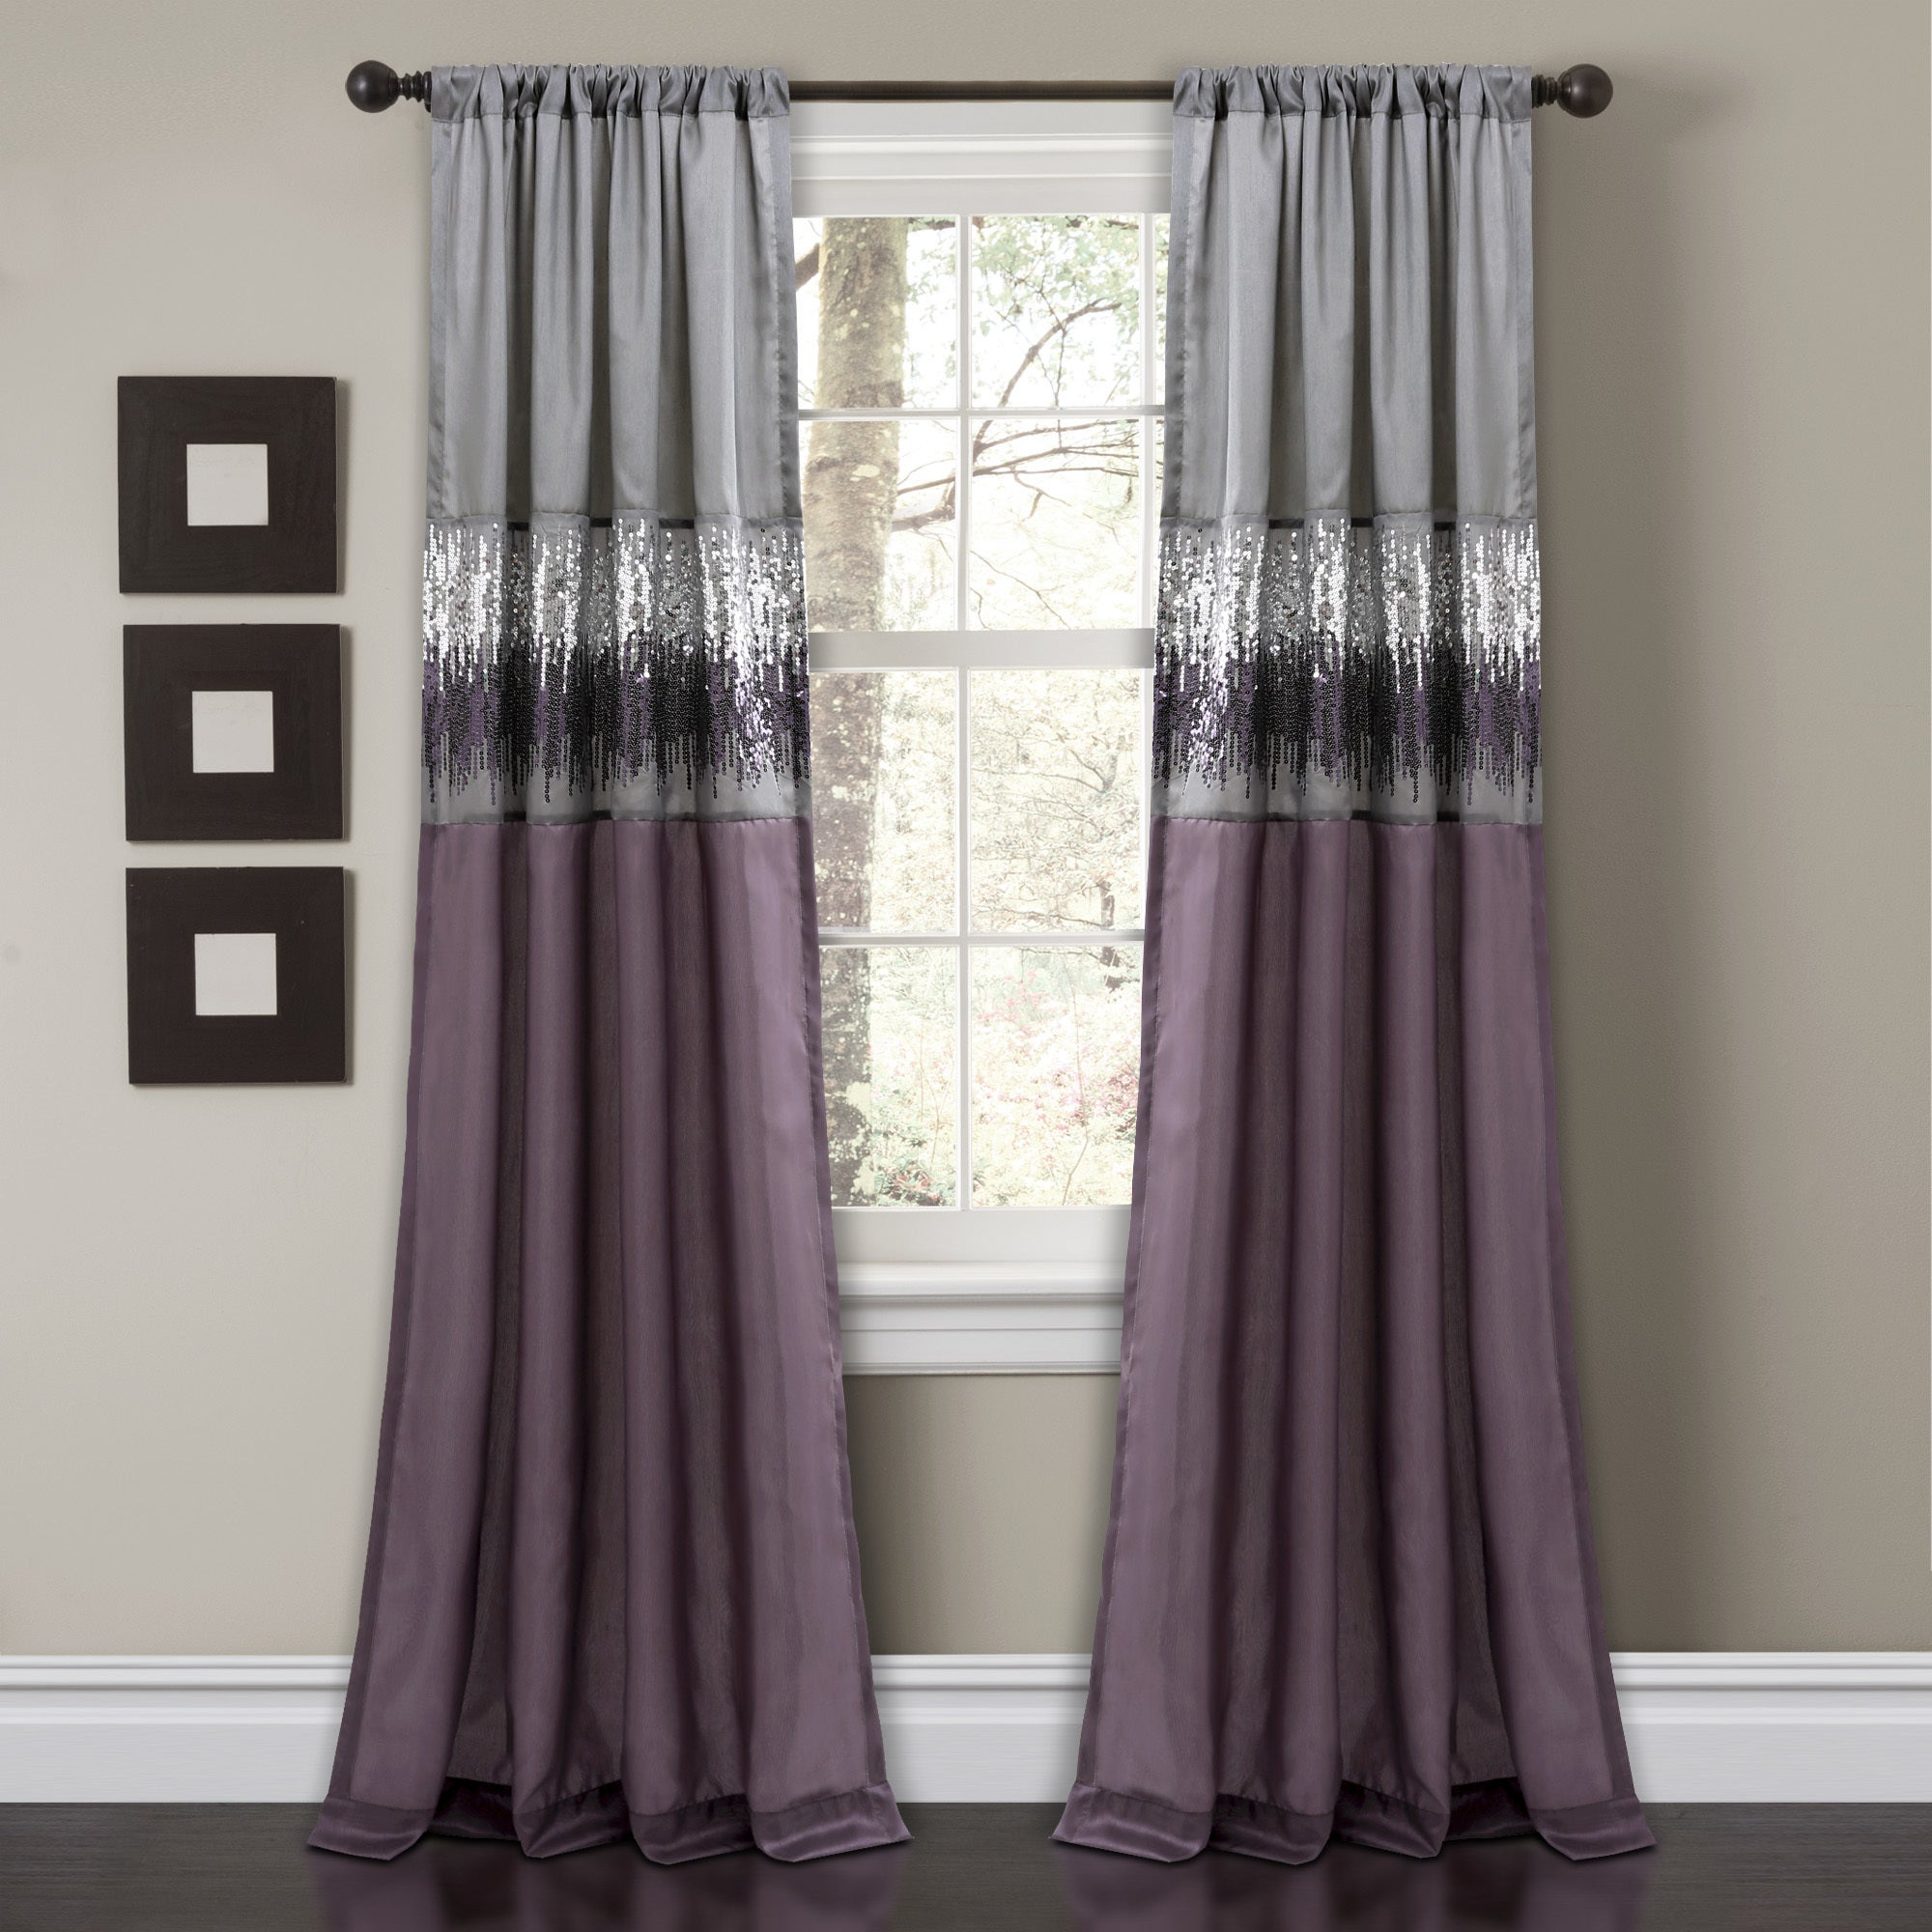 curtains grommet linen xxx of tone natural top do product market world set